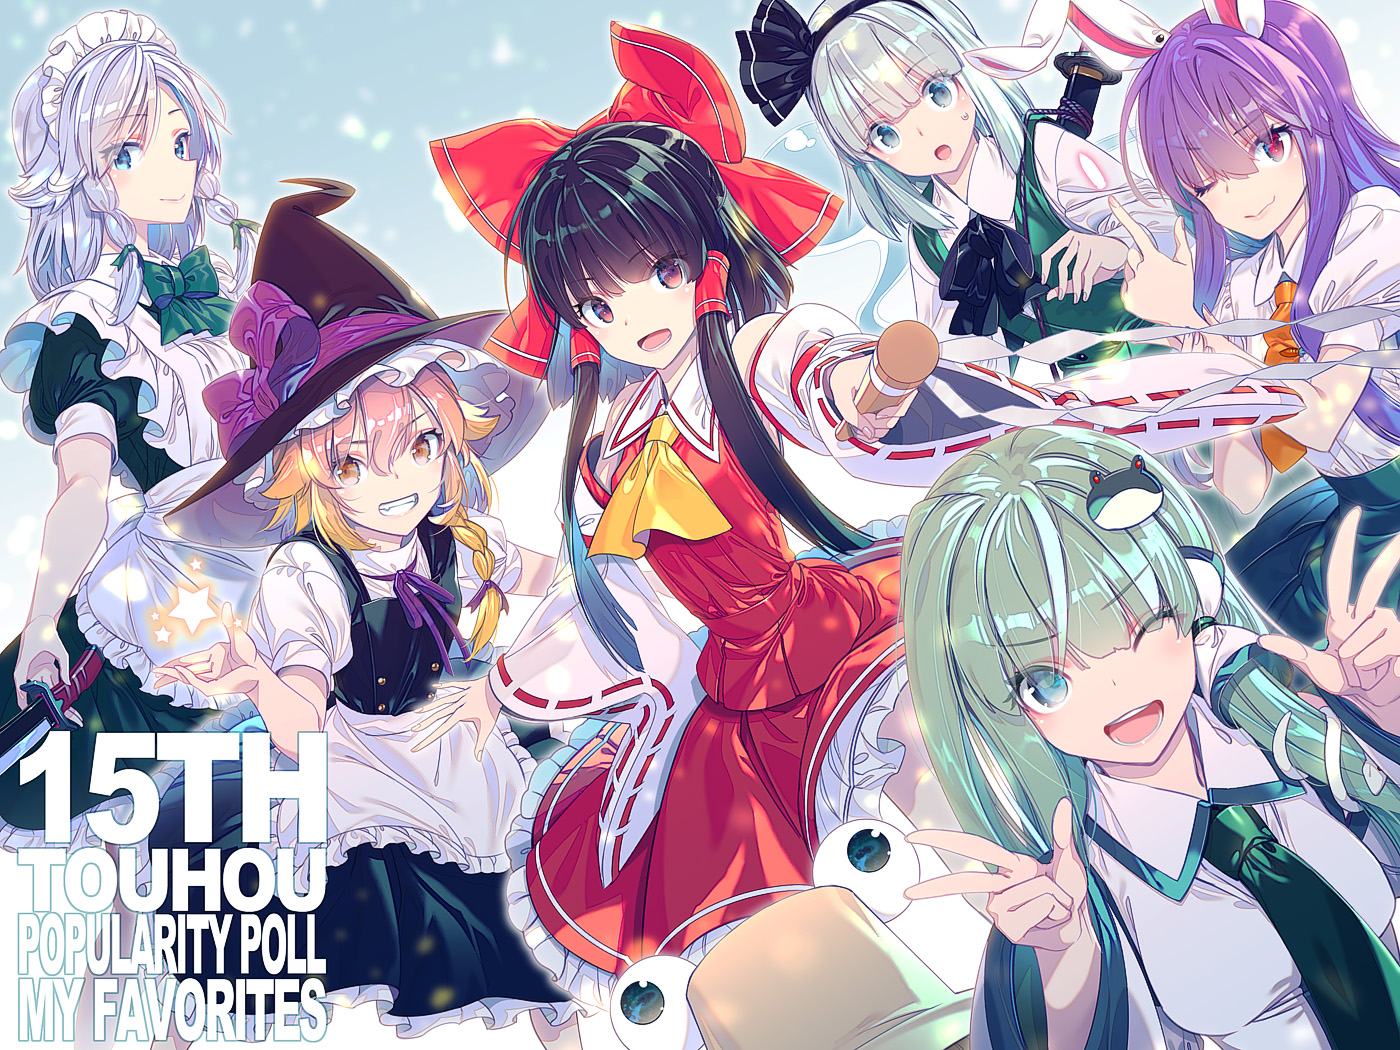 animal animal_ears apron aqua_eyes black_hair blonde_hair bow braids brown_eyes bunny_ears bunnygirl dress gray_eyes gray_hair green_hair group hakurei_reimu hat headdress izayoi_sakuya japanese_clothes kirisame_marisa knife kochiya_sanae konpaku_youmu long_hair maid miko moriya_suwako myon red_eyes reisen_udongein_inaba ribbons short_hair skirt snake sword tie touhou twintails weapon wink witch witch_hat yellow_eyes zounose